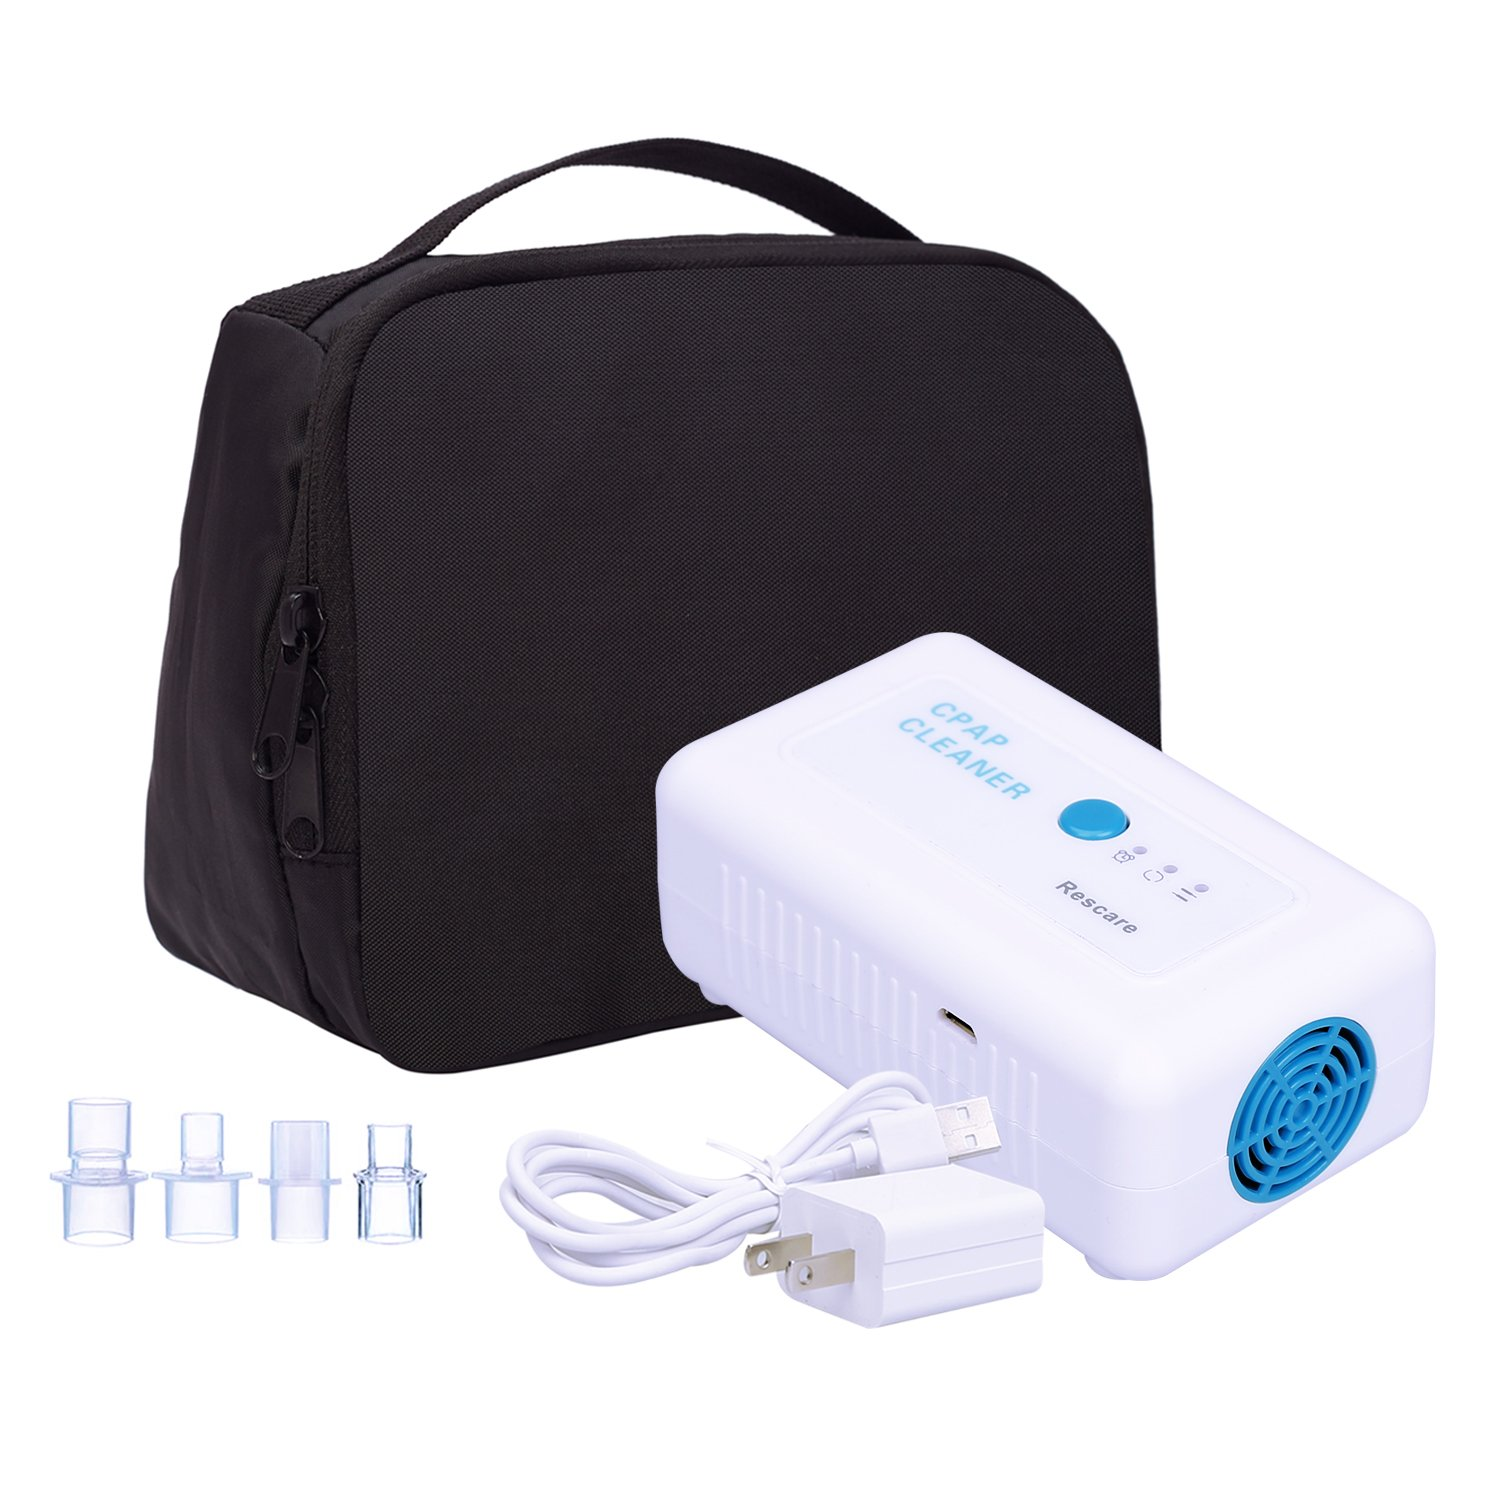 CPAP Cleaning & Sanitizing Machine – Rescare M1 CPAP Cleaner CPAP Supplies Ober Health